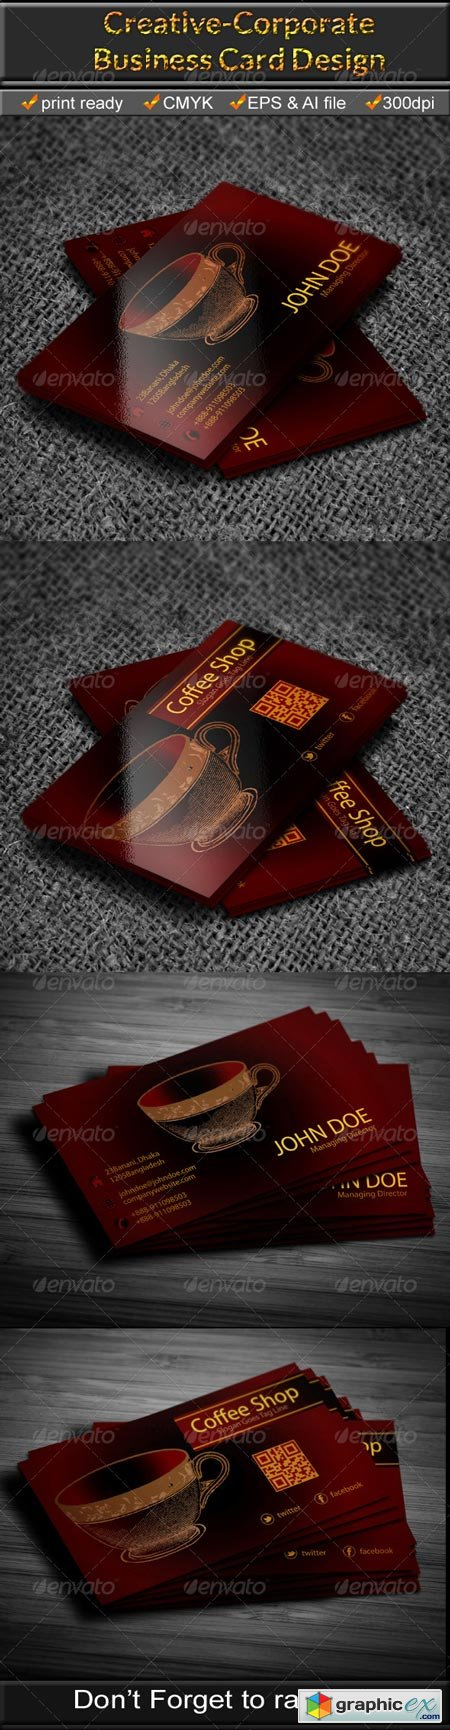 Coffee Shop Business Card 6675016